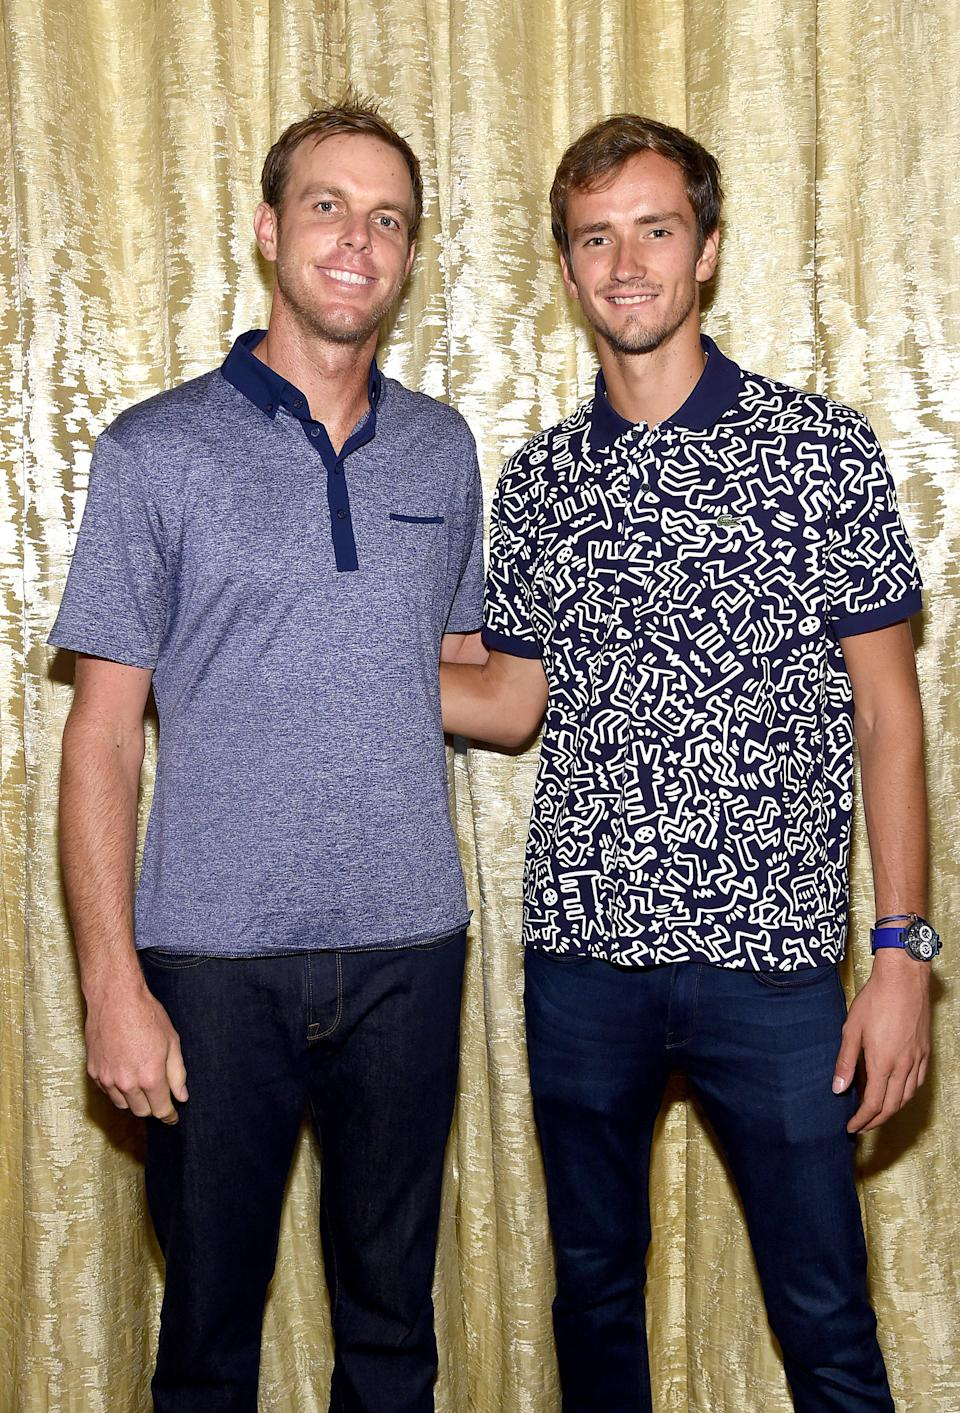 American tennis star Querrey posed for a photo with Russia's Medvedev.